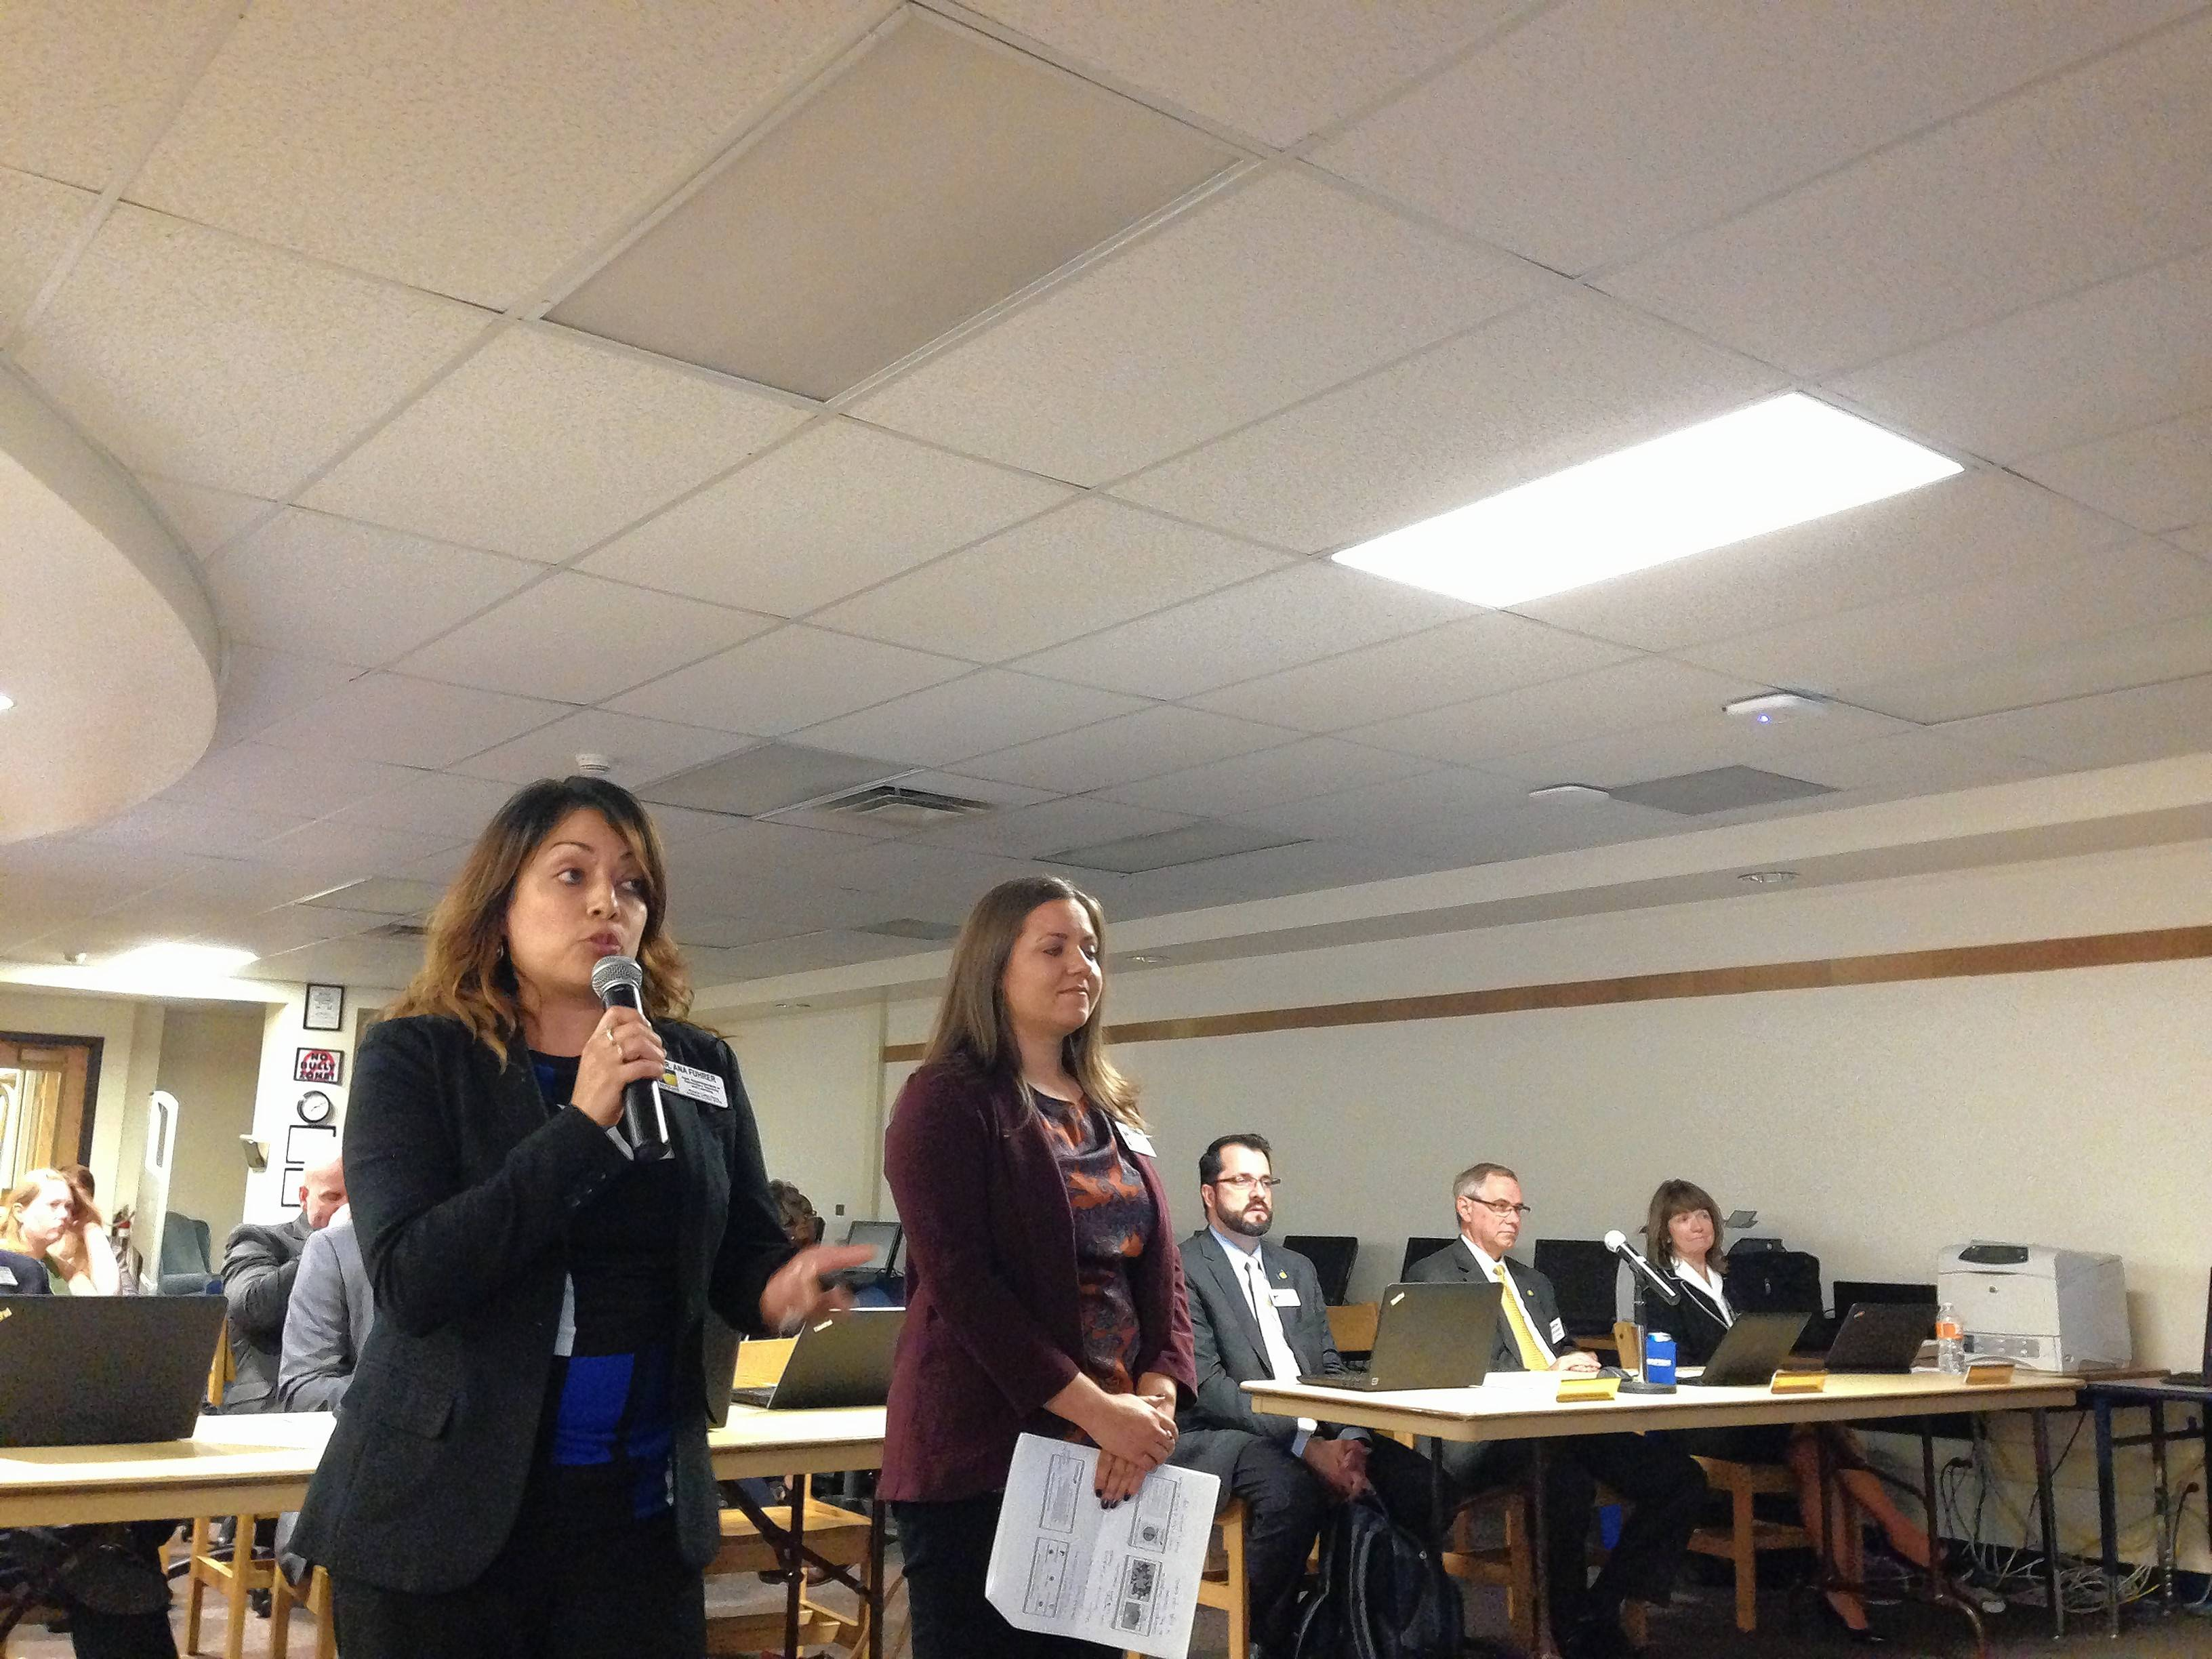 Ana Fuhrer, left, Round Lake Area Unit District 116's assistant superintendent of elementary teaching and learning, speaks about a new academic enrichment program Monday night. She's accompanied by District 116 elementary teaching and learning coordinator Melanie Lanni.